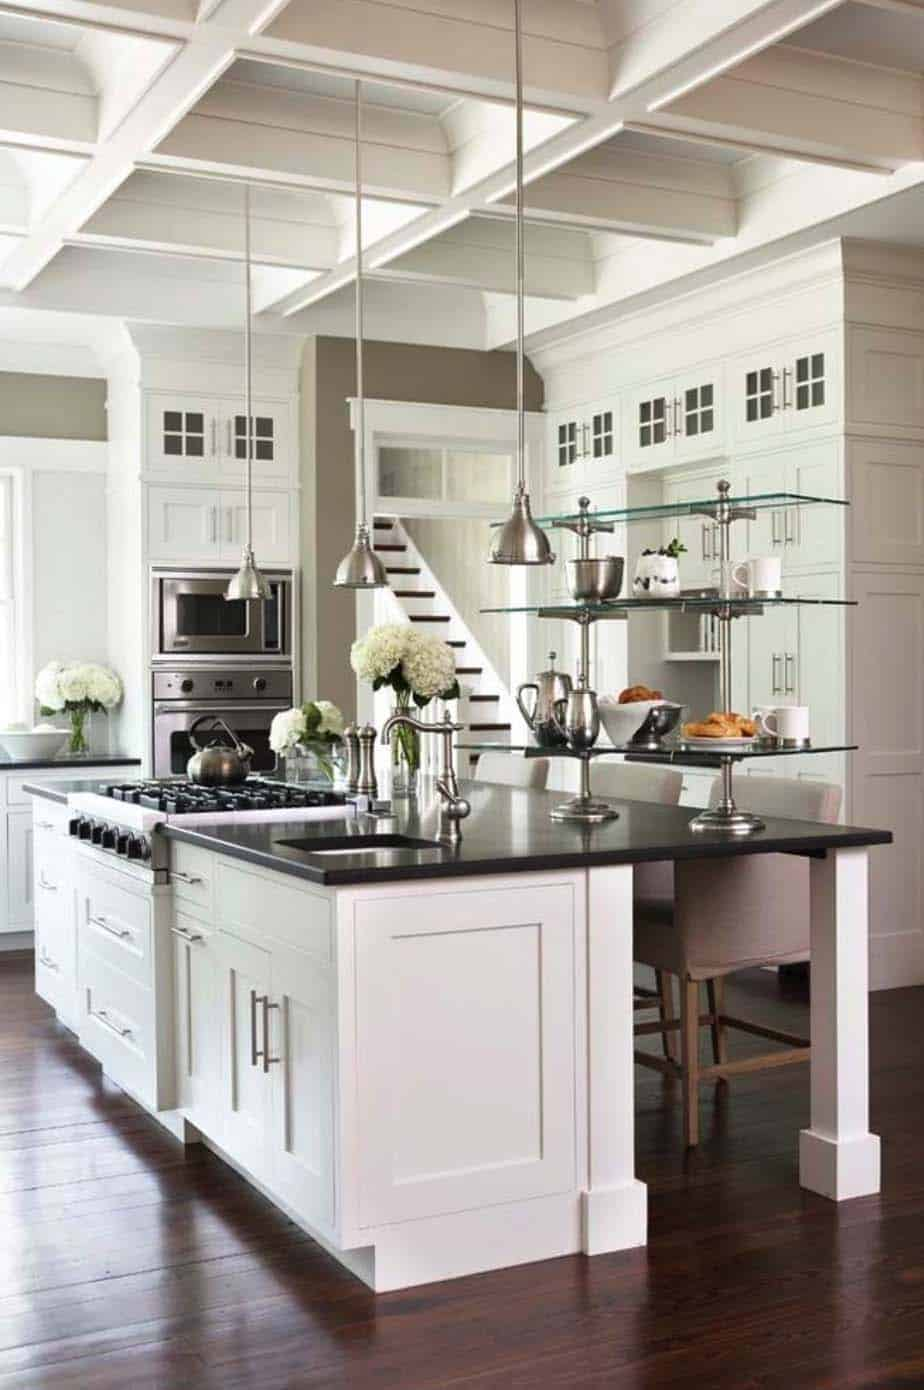 Lowcountry Style Home-Linda McDougald Design-06-1 Kindesign